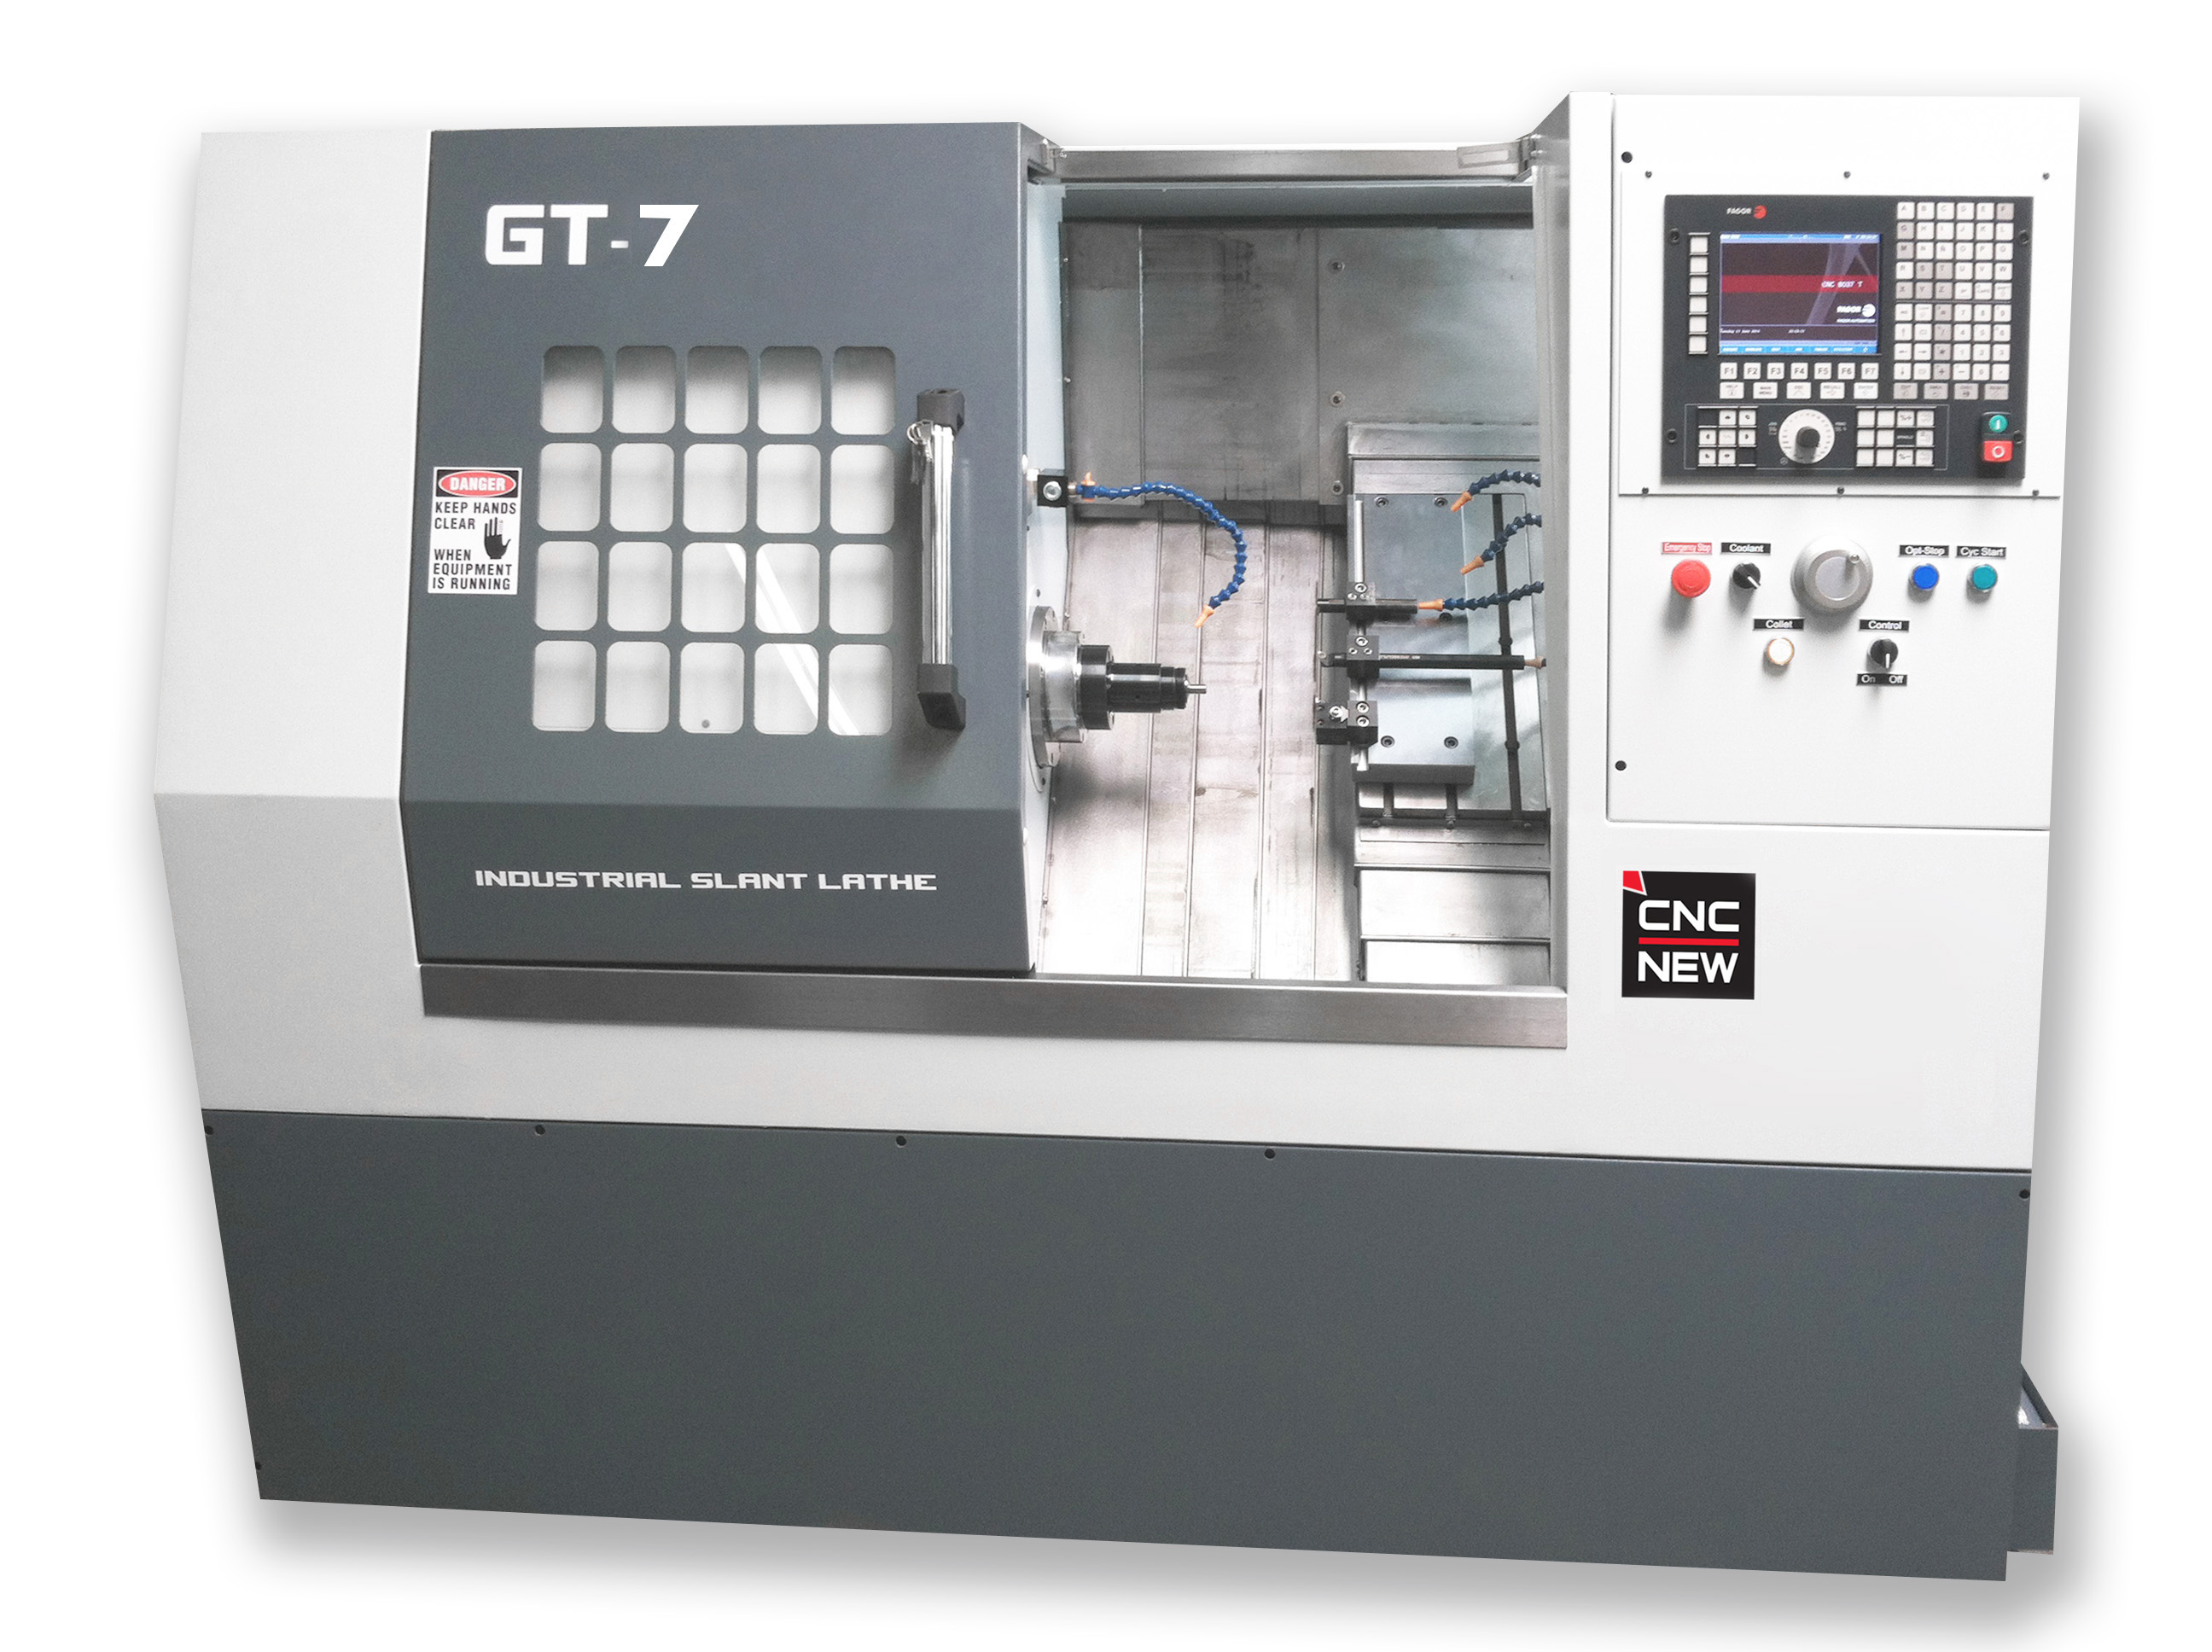 GT-7-RB08 Gang Tool Lathe with Robotic Arm Loader